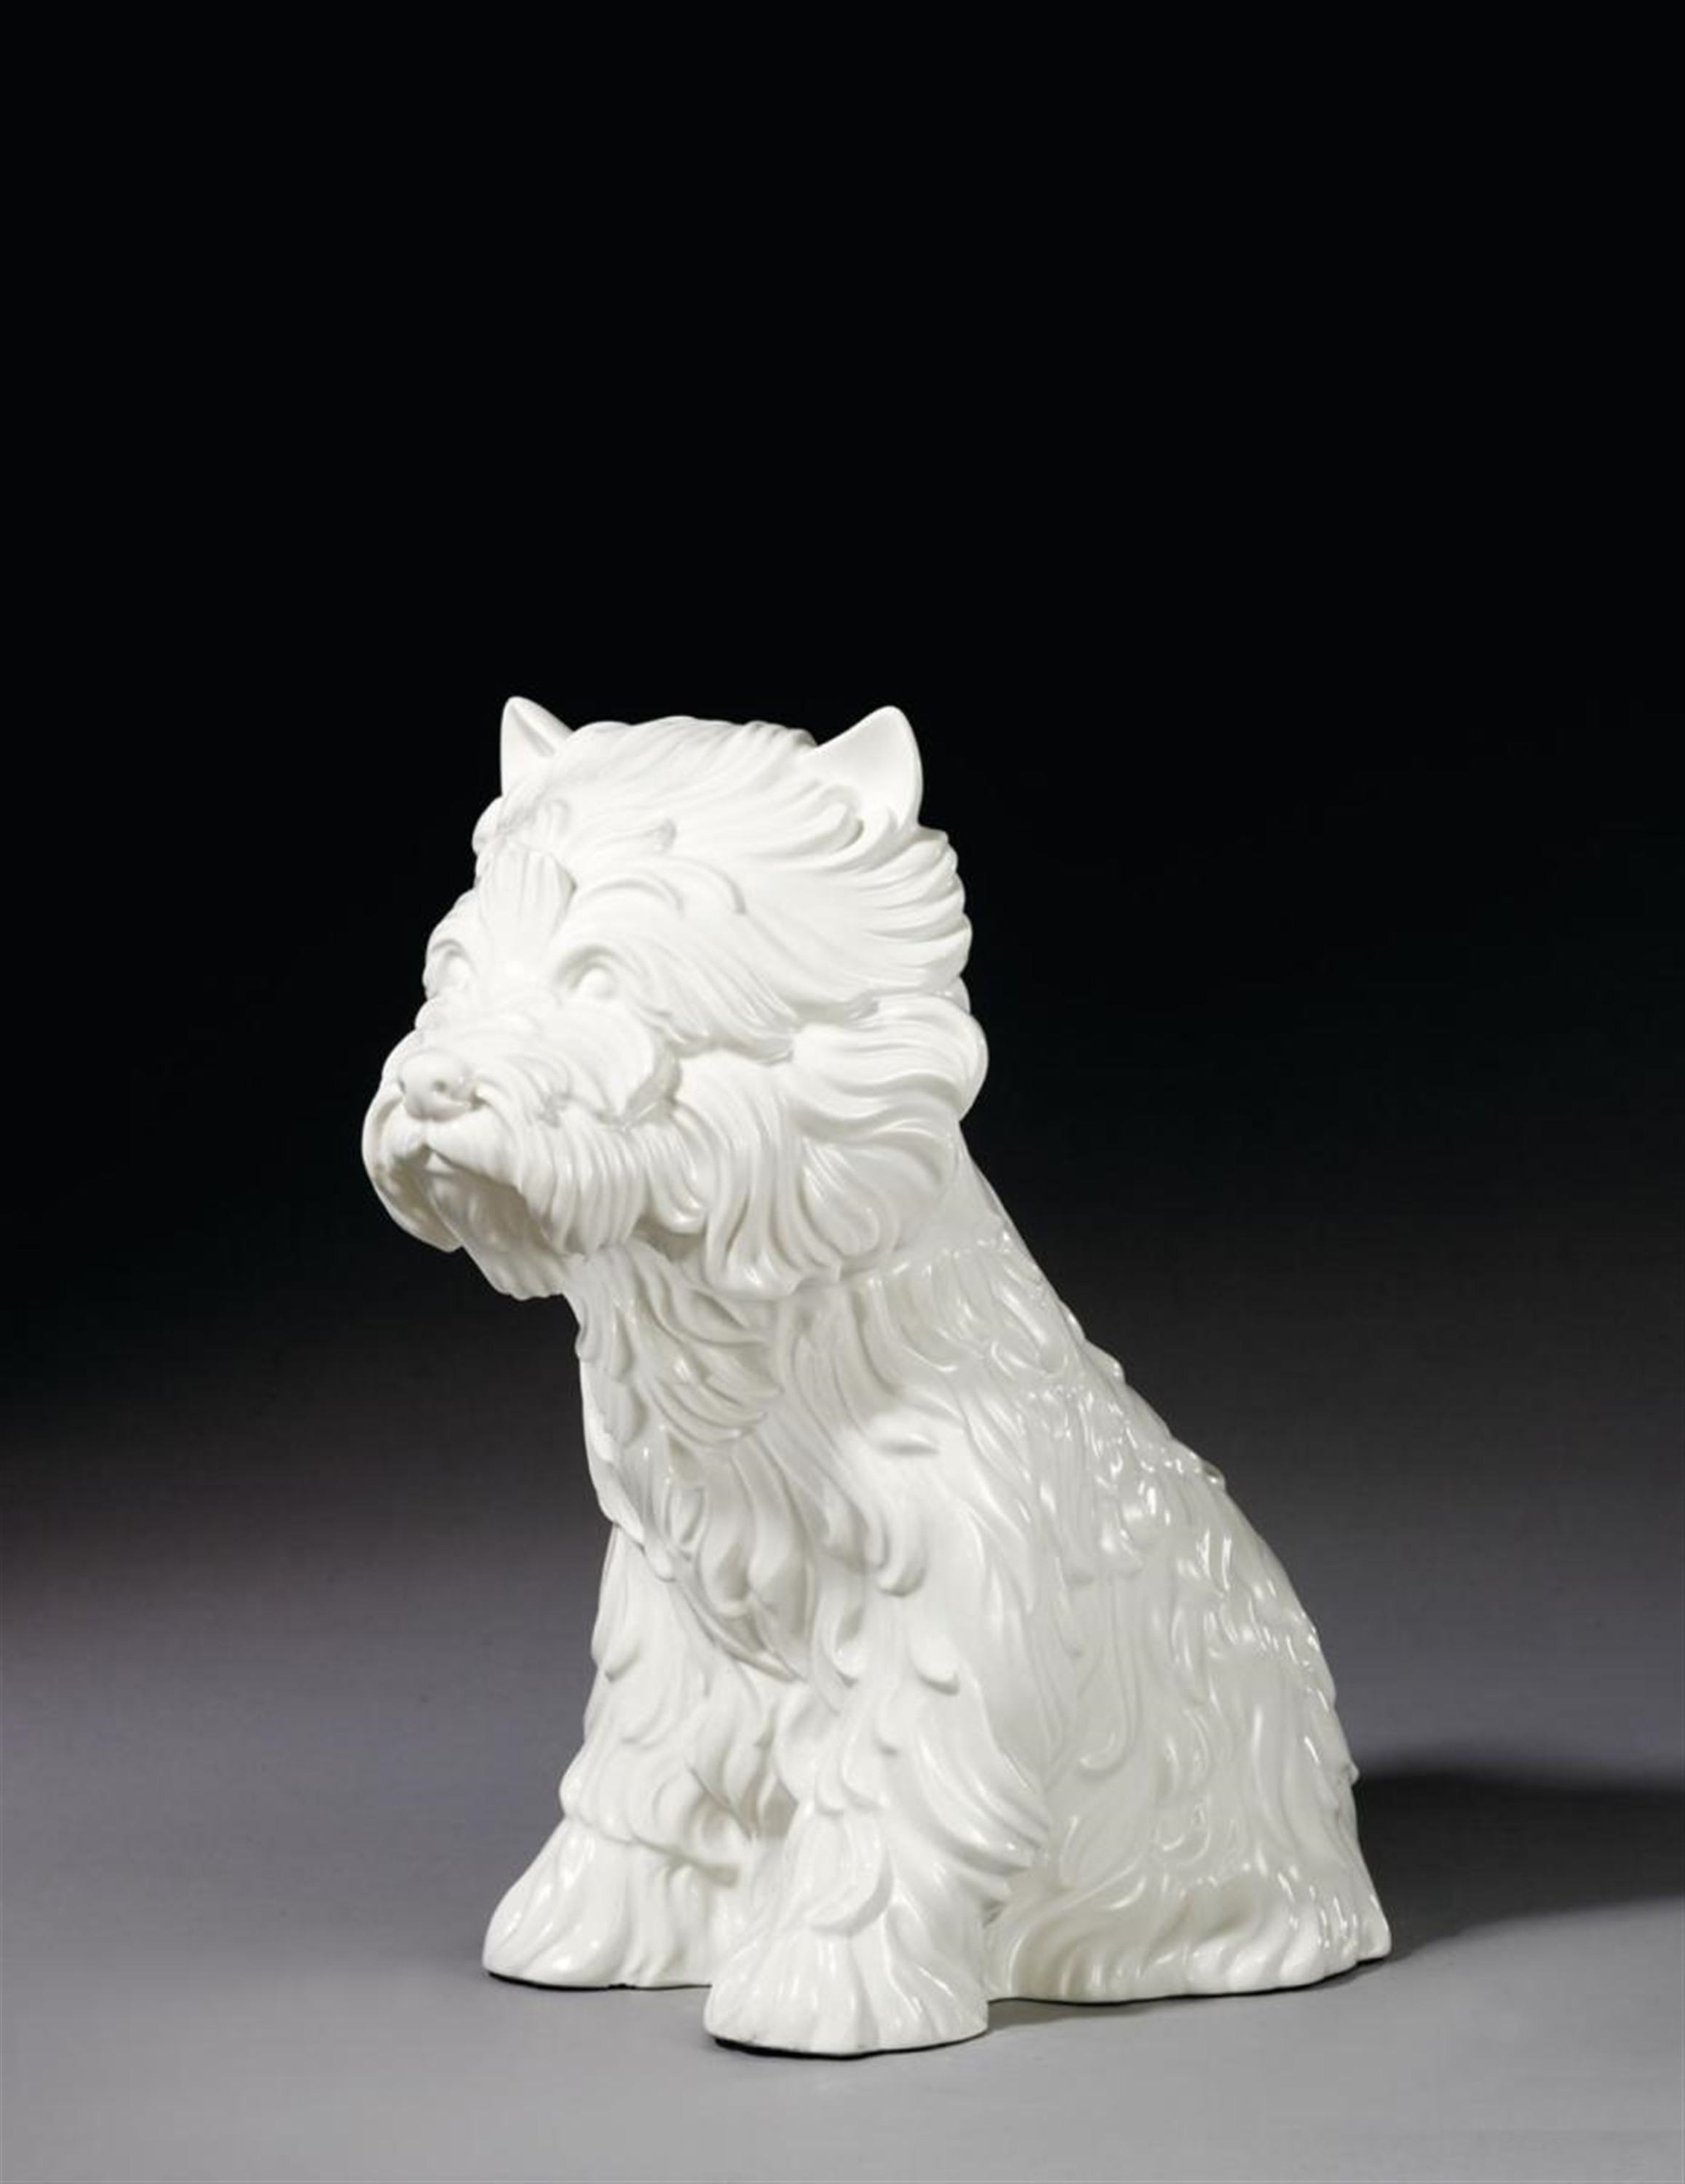 18 Stylish Jeff Koons Puppy Vase Price 2021 free download jeff koons puppy vase price of puppy auktionshaus lempertz intended for jeff koons puppy 1989 auction 930 contemporary art and photography lot 250